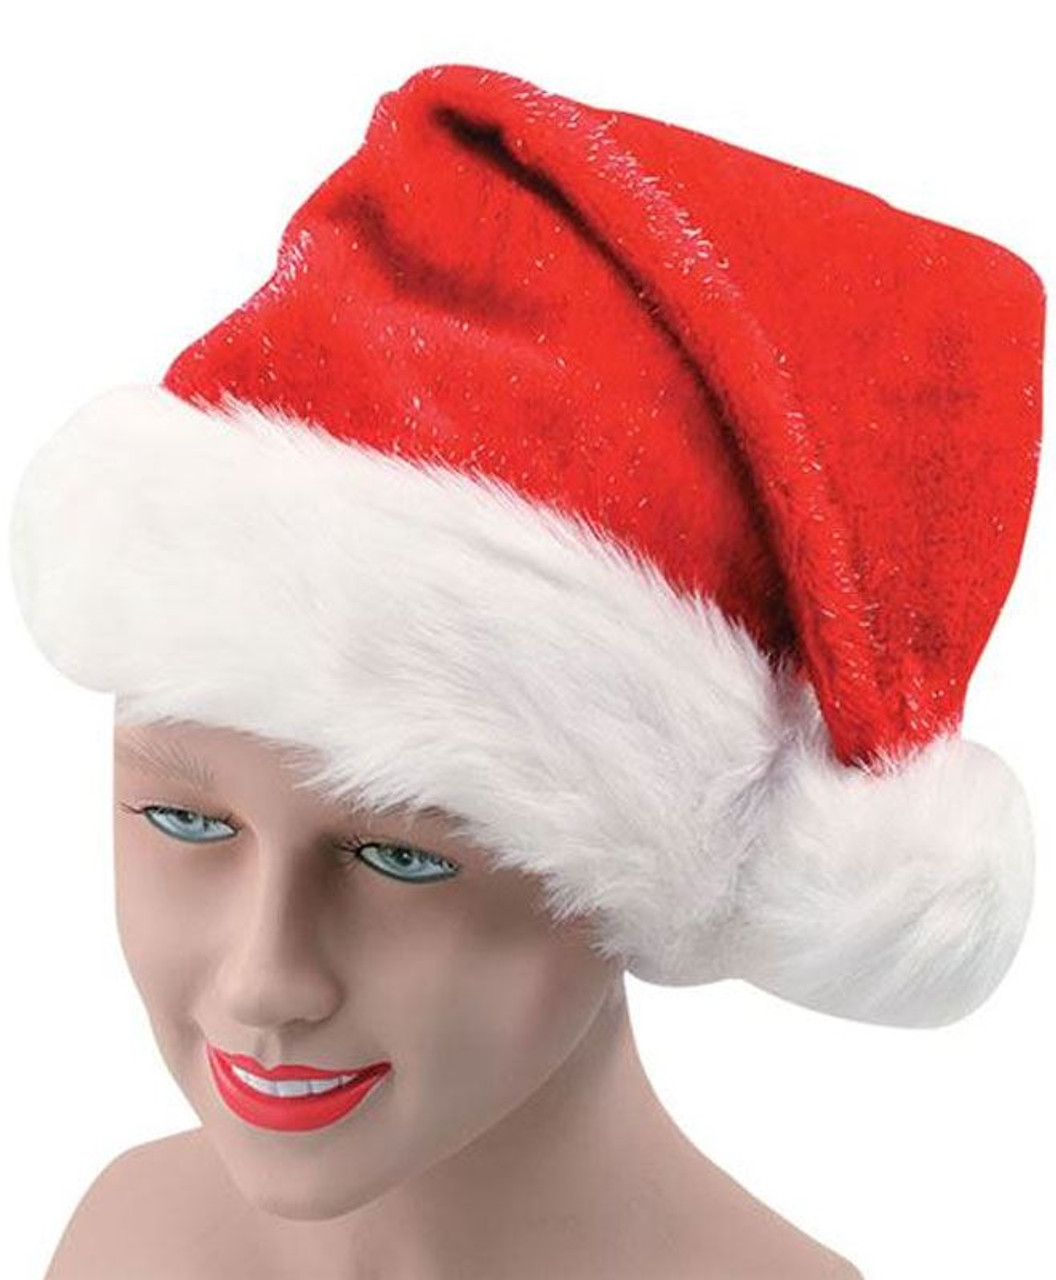 e8be3e8aa1b Adults Red   Gold Glitter Santa Hat with White Trim Christmas Accessory